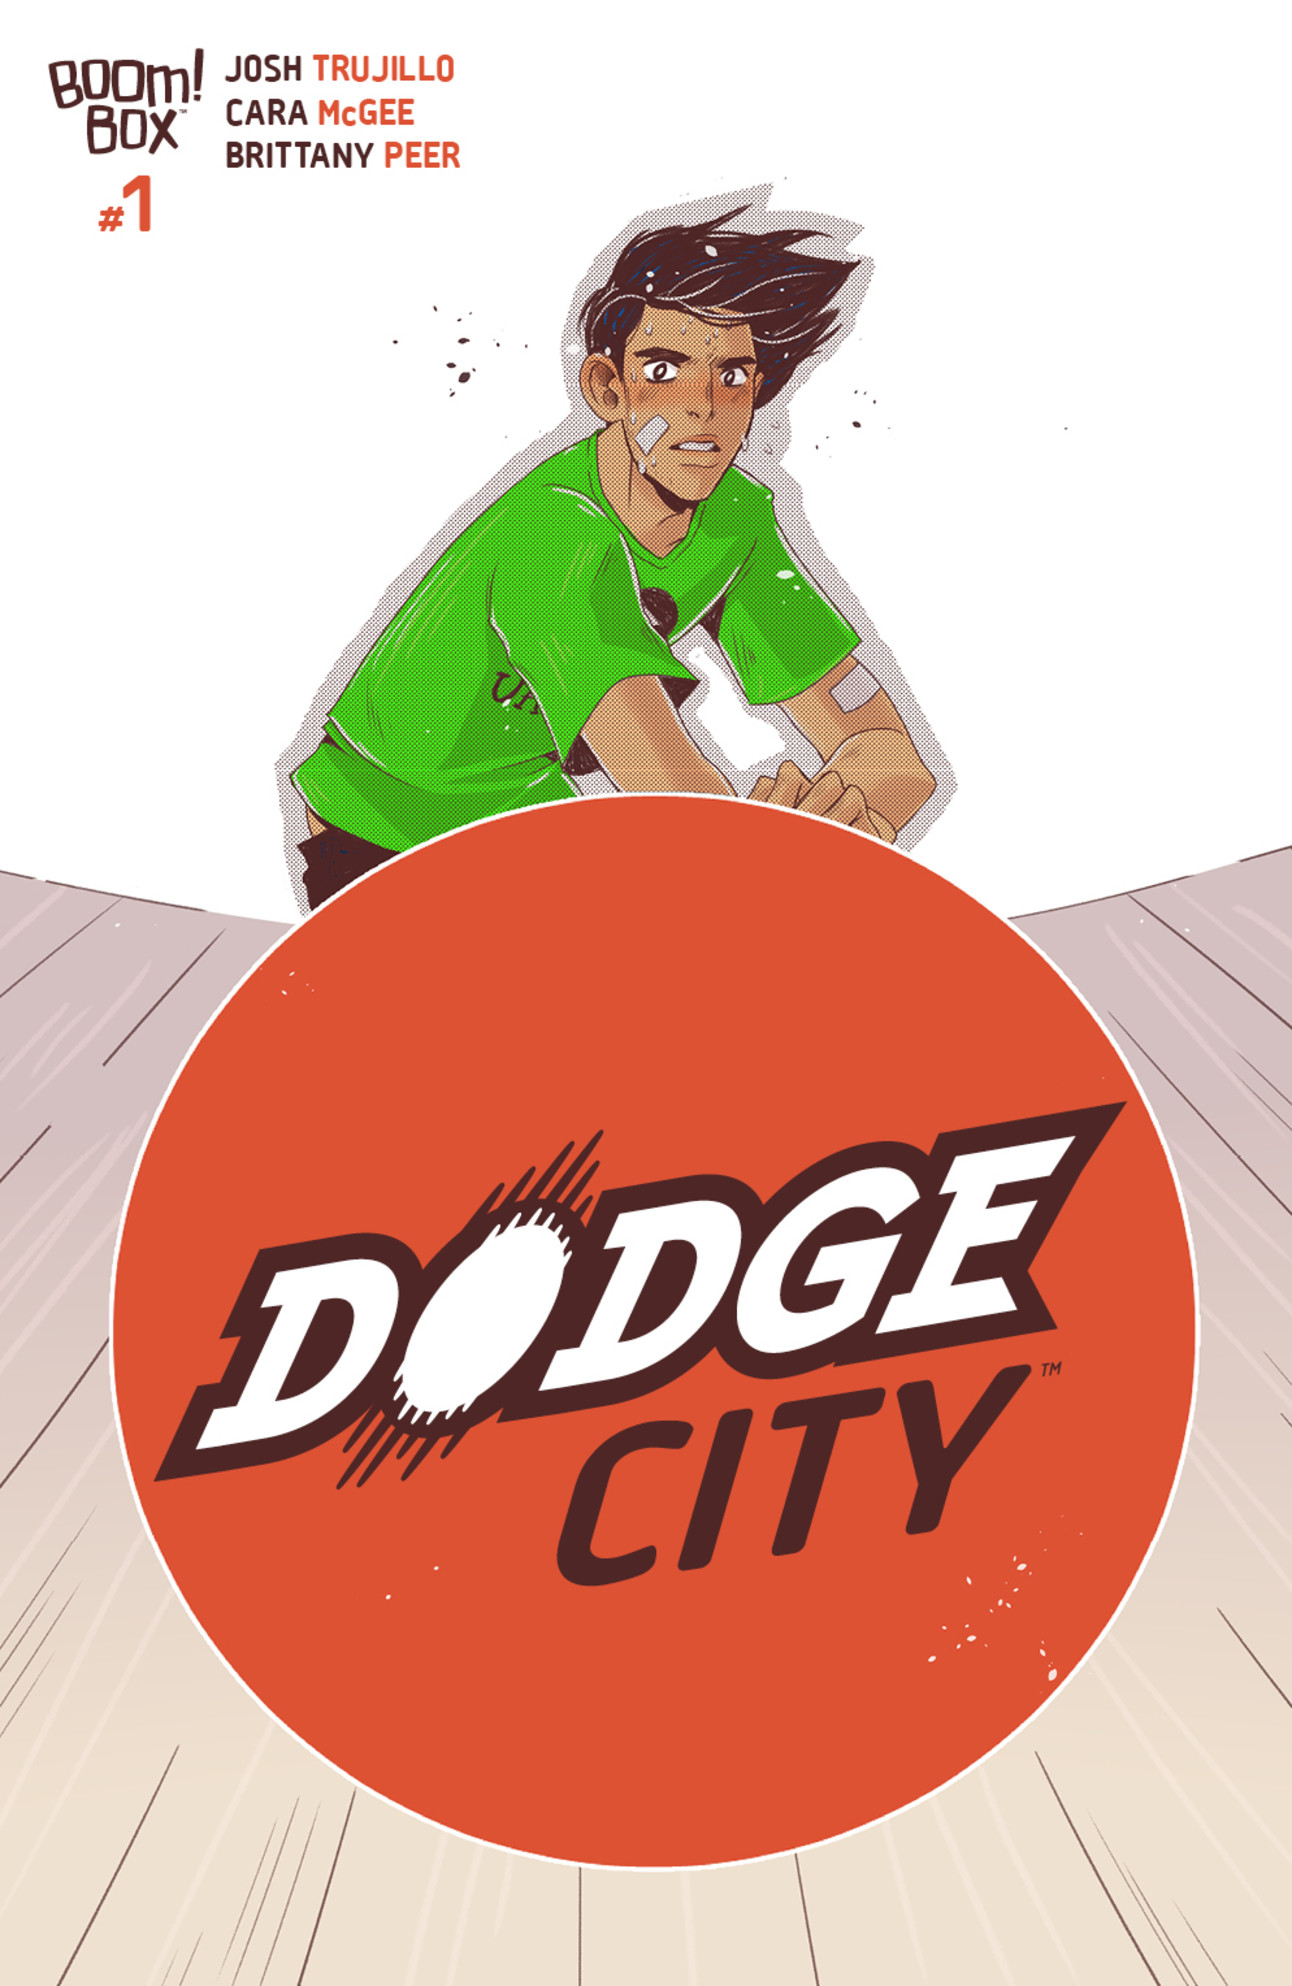 boom_dodge_city_1_cover.jpg